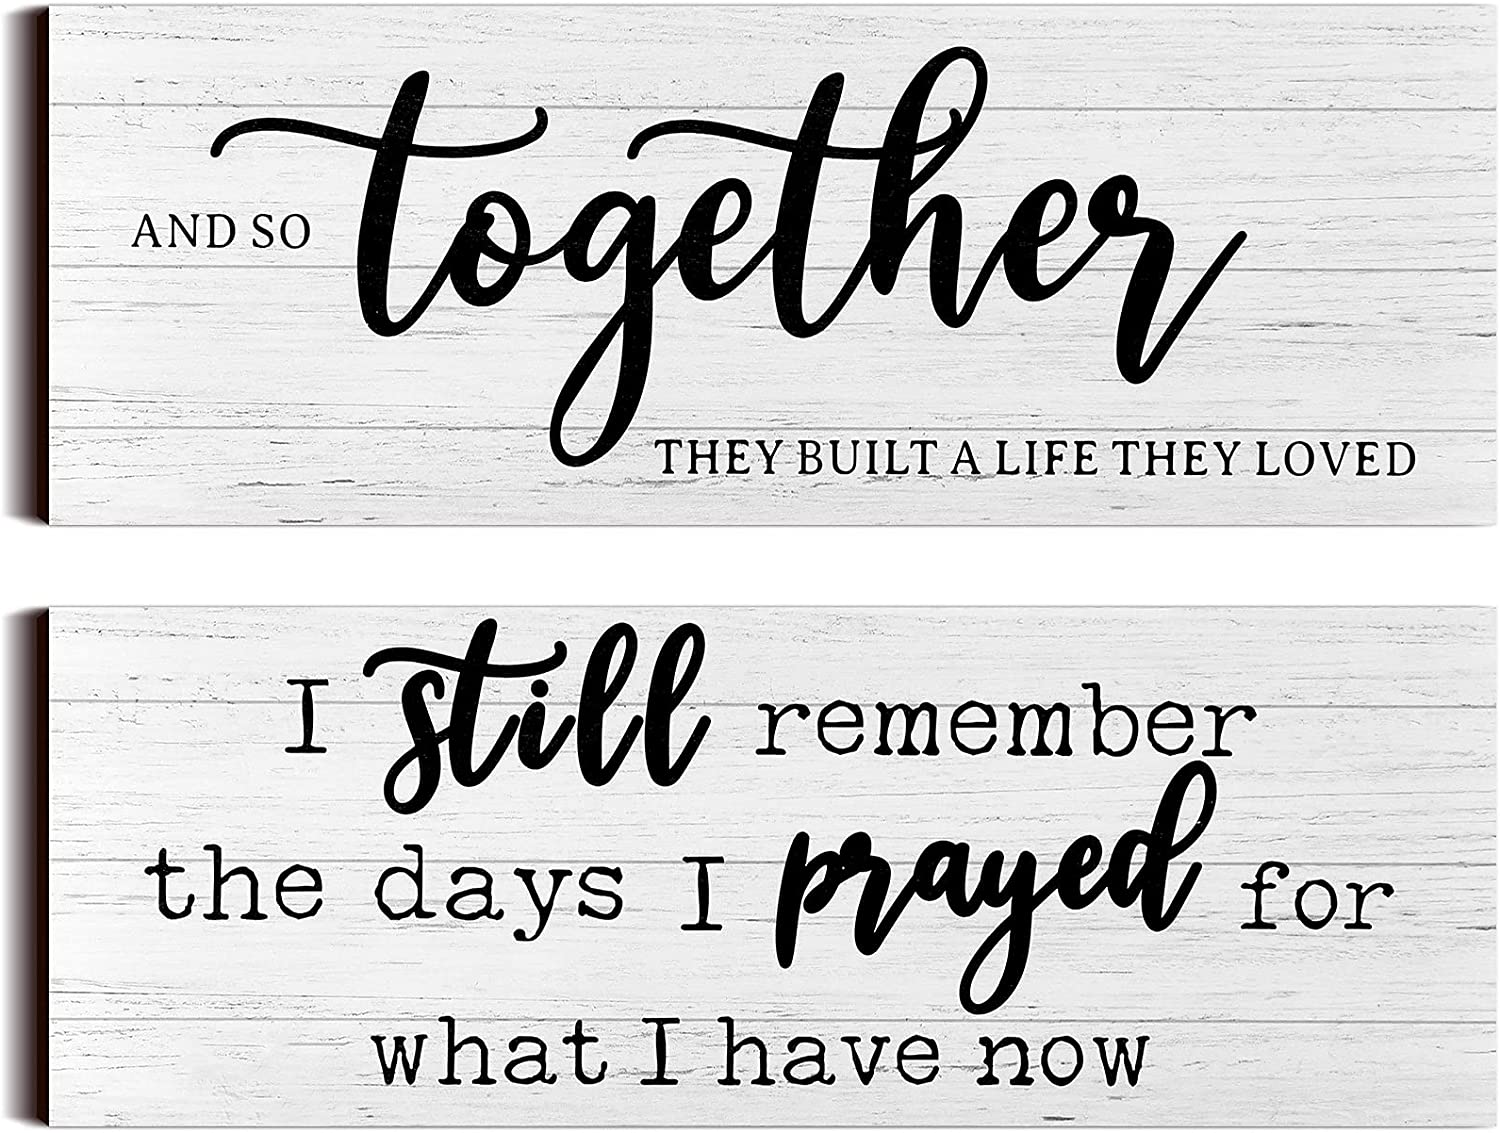 I Still Remember The Days I Prayed Modern Farmhouse Decor Rustic Wood Sign and So Together They Built a Life They Loved Sign Rustic Wood Family Sign Wooden Plaque Signs for Women